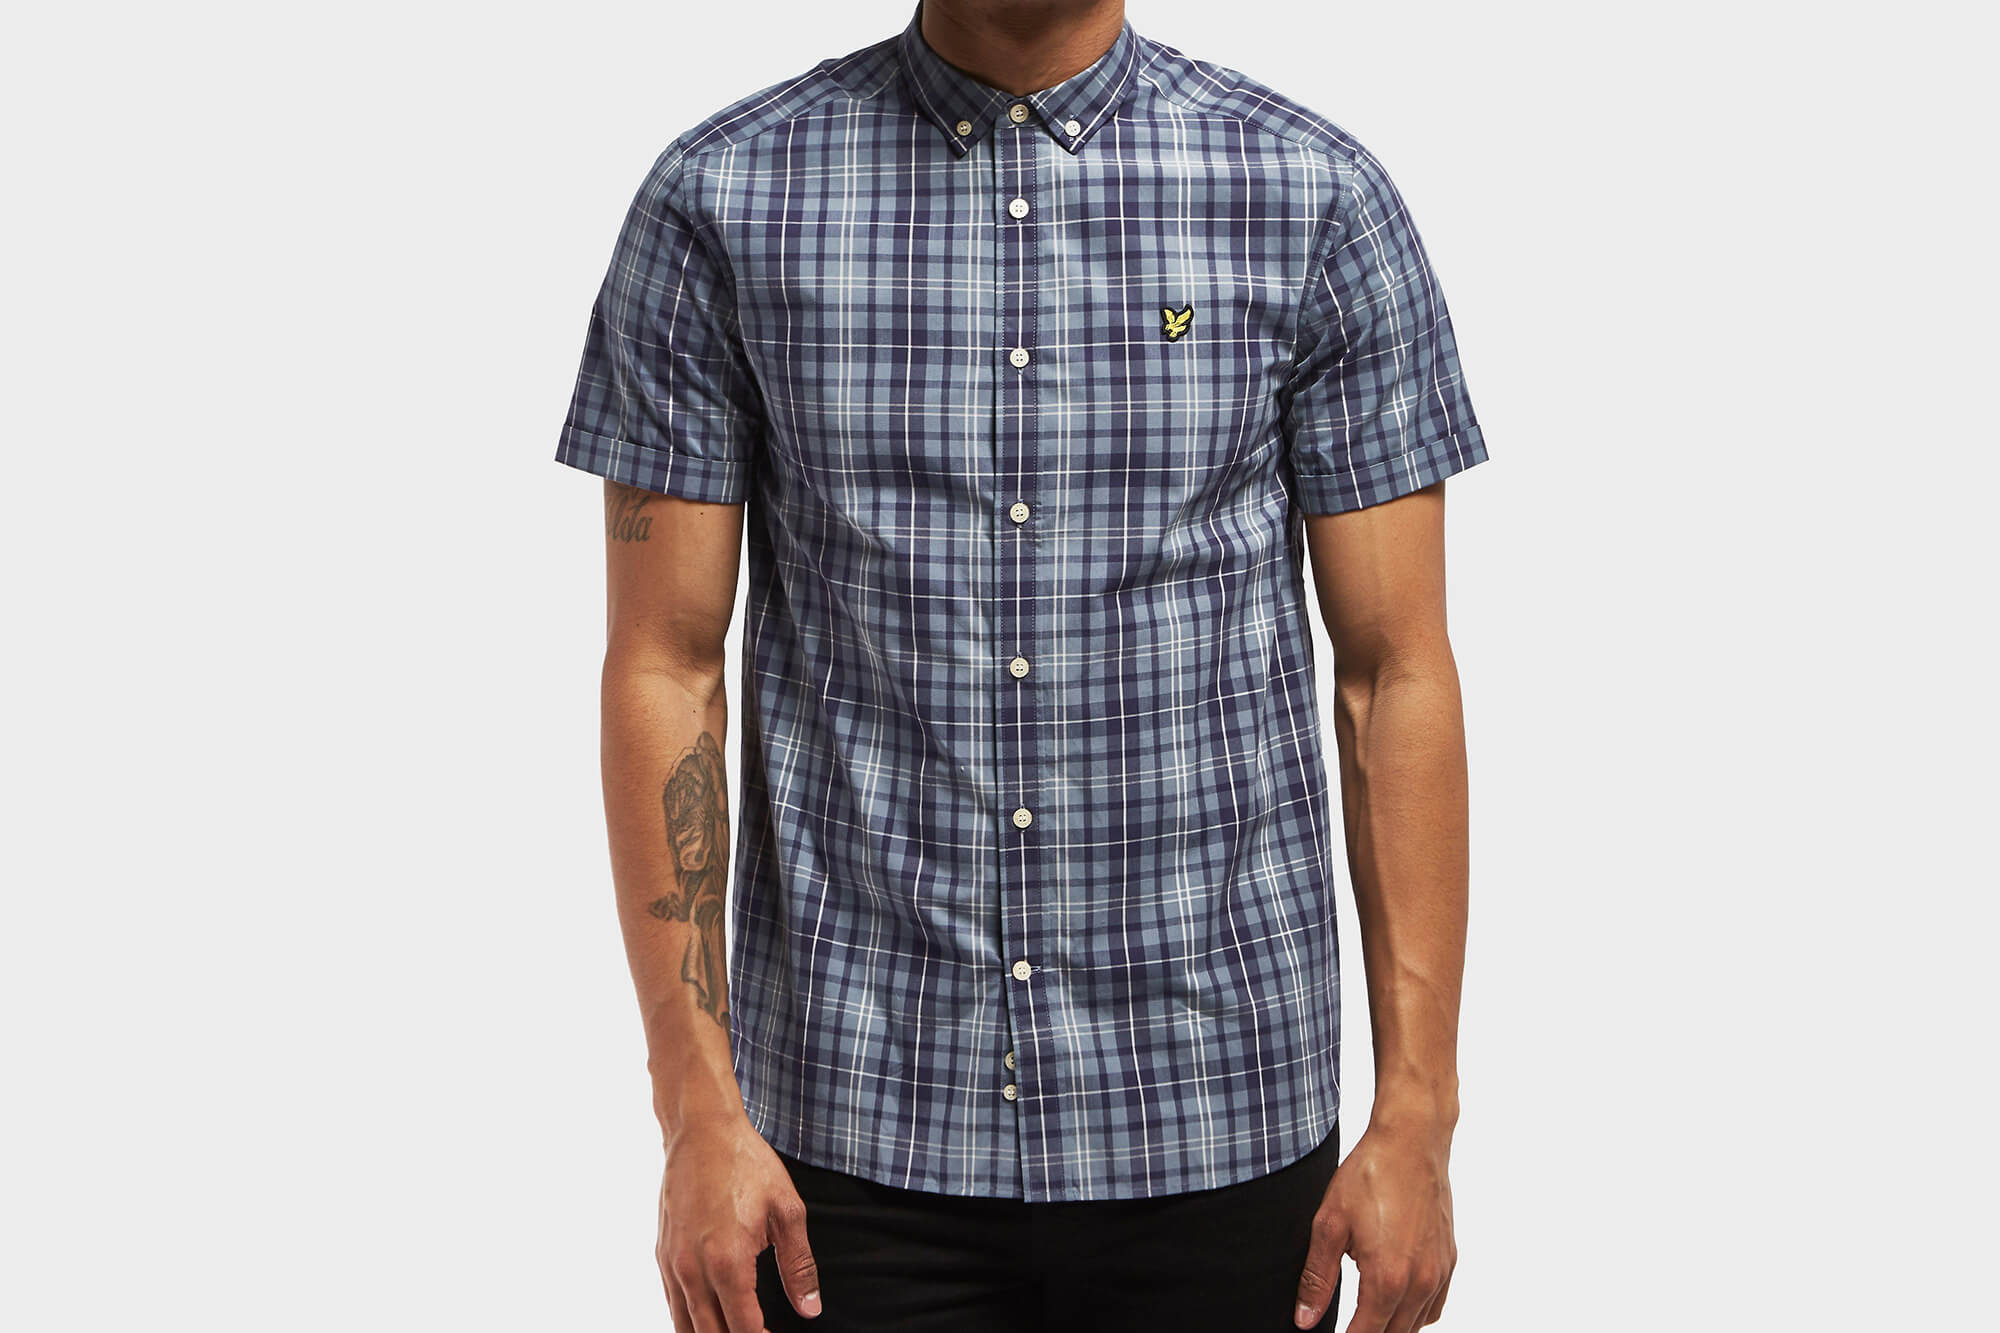 Lyle & Scott Short Sleeved Check Shirt